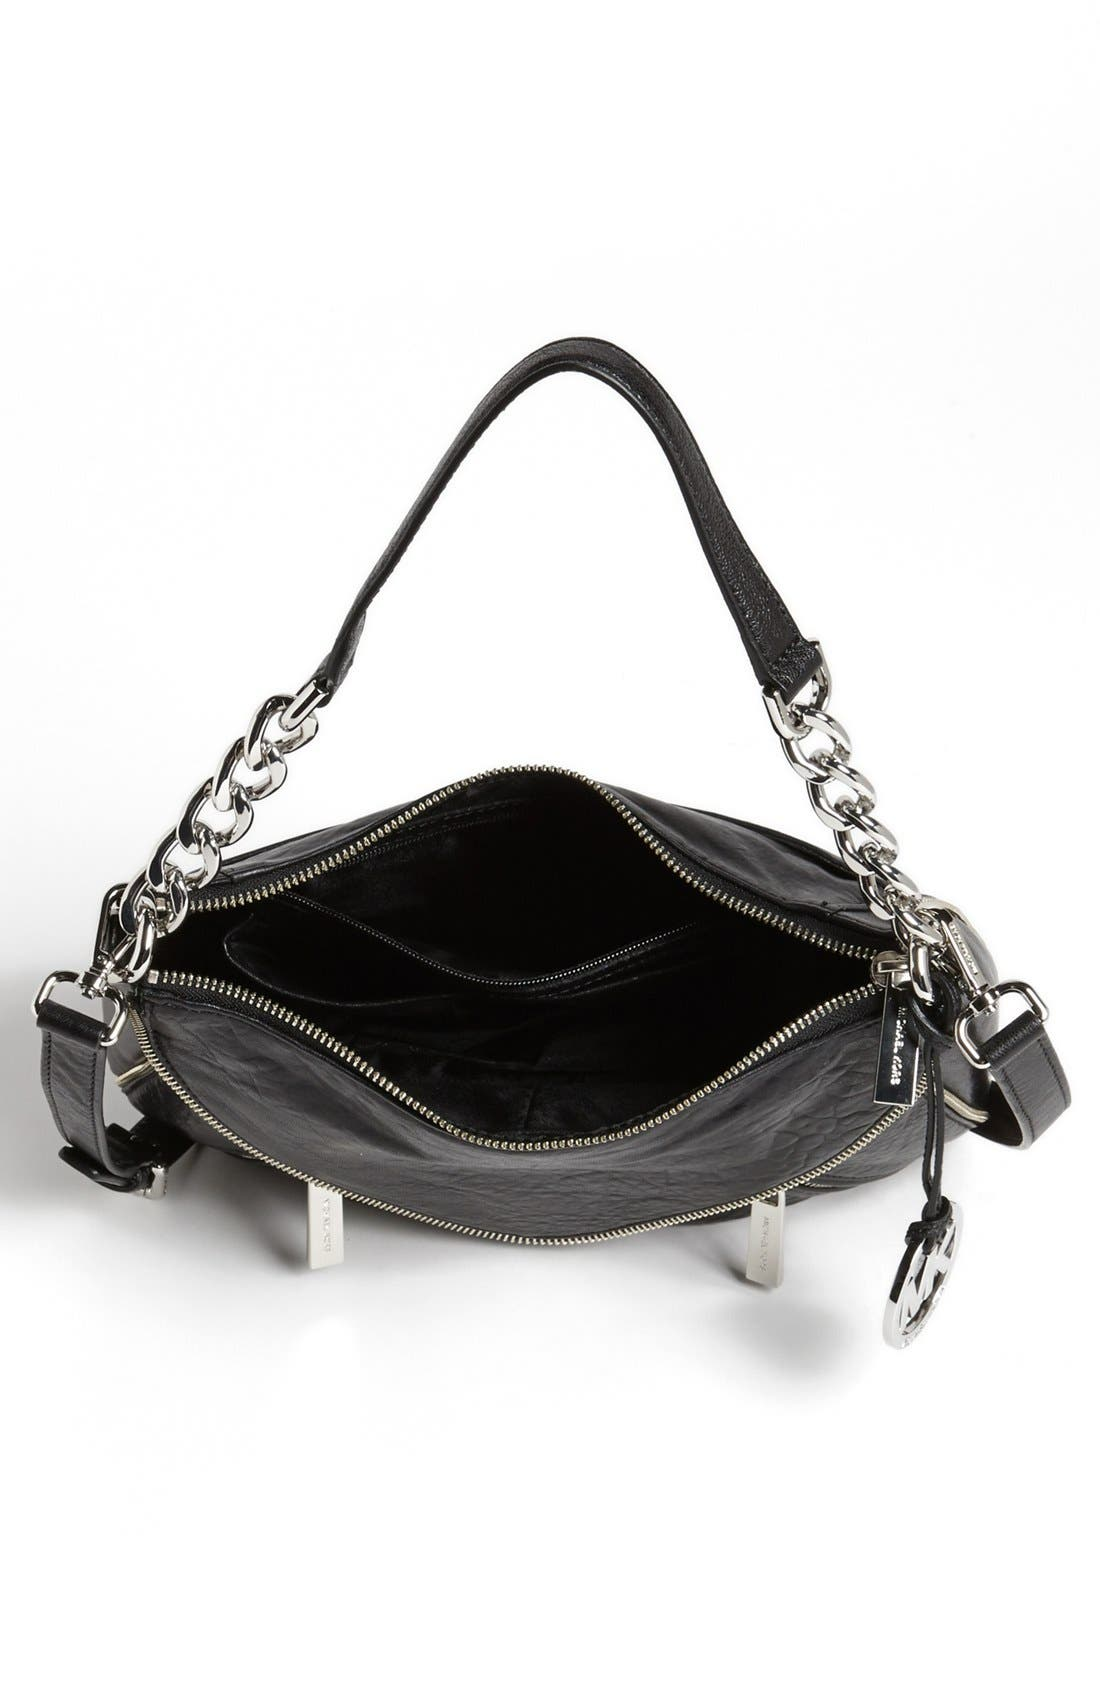 Alternate Image 3  - MICHAEL Michael Kors 'Odette - Medium' Leather Crossbody Bag